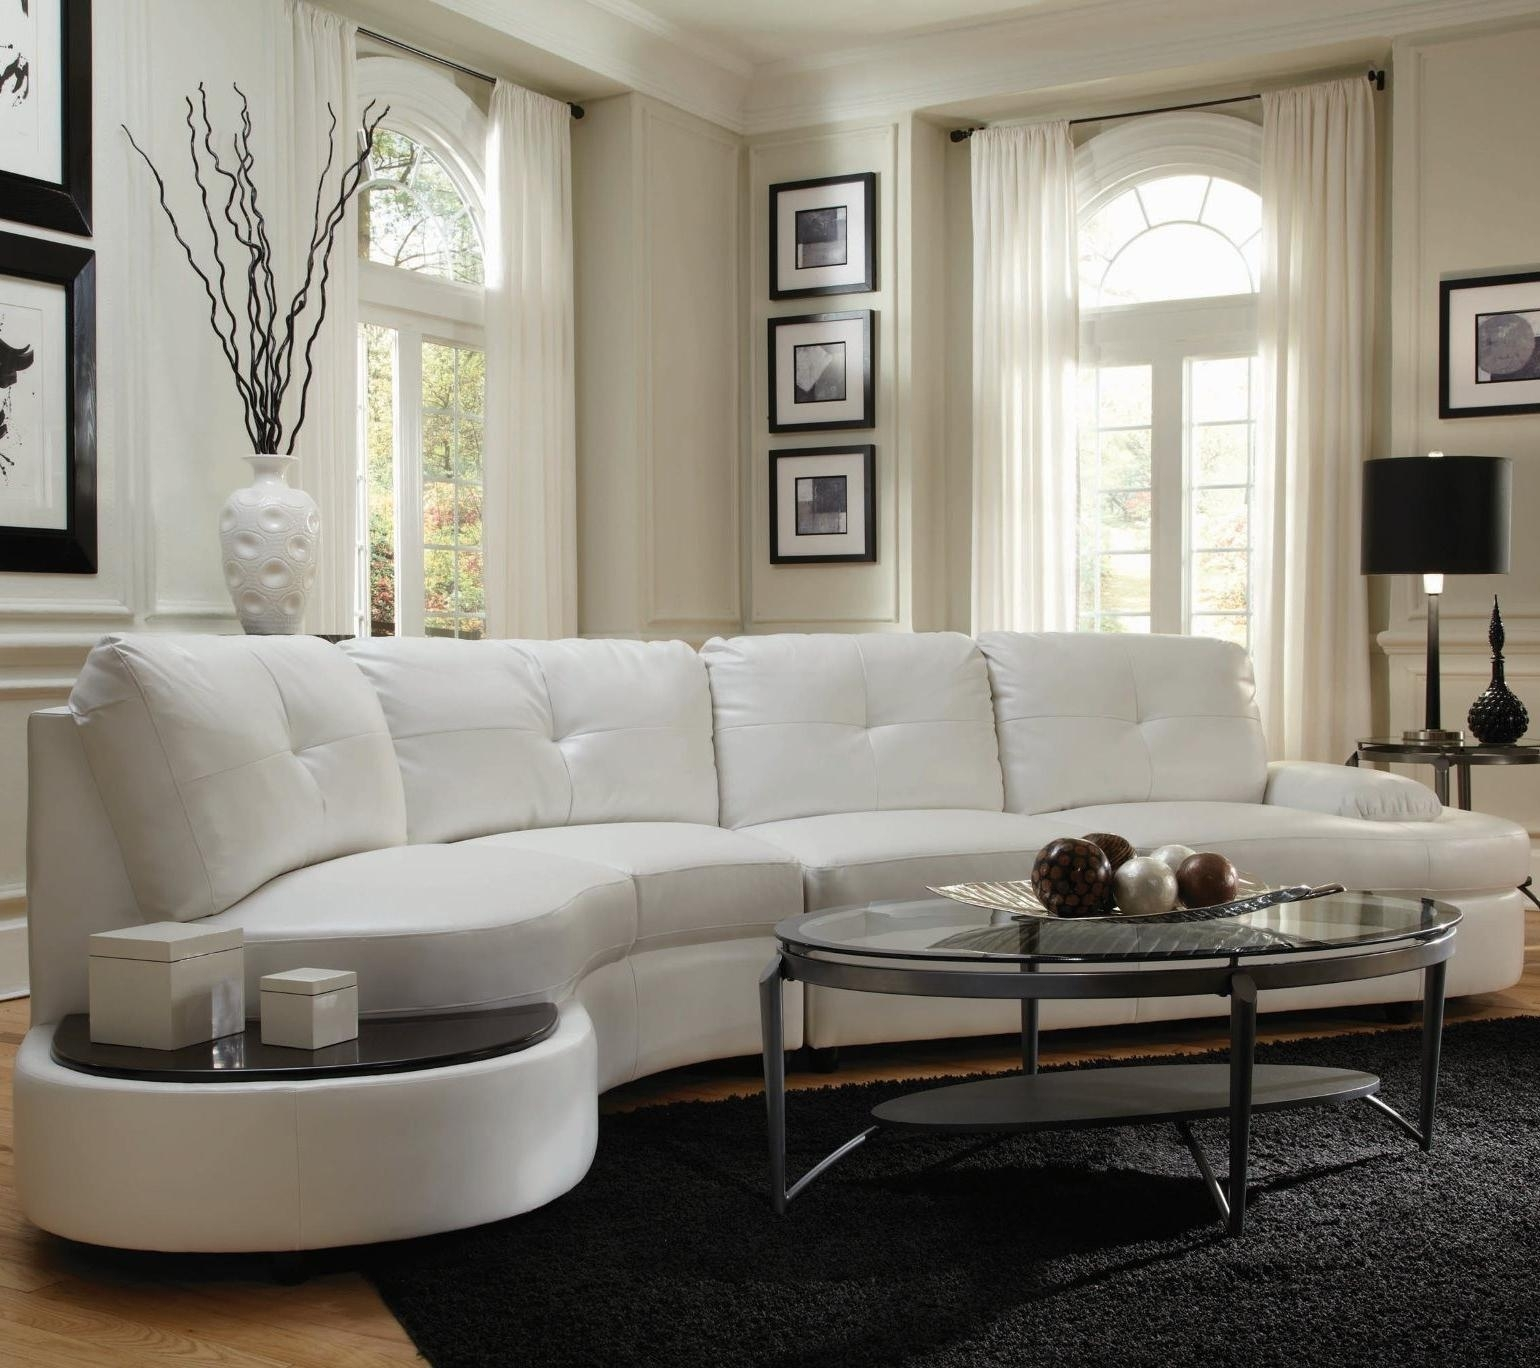 Talia Contemporary Sectional Conversation Sofa With Built-In Table within Contemporary Curves Coffee Tables (Image 26 of 30)